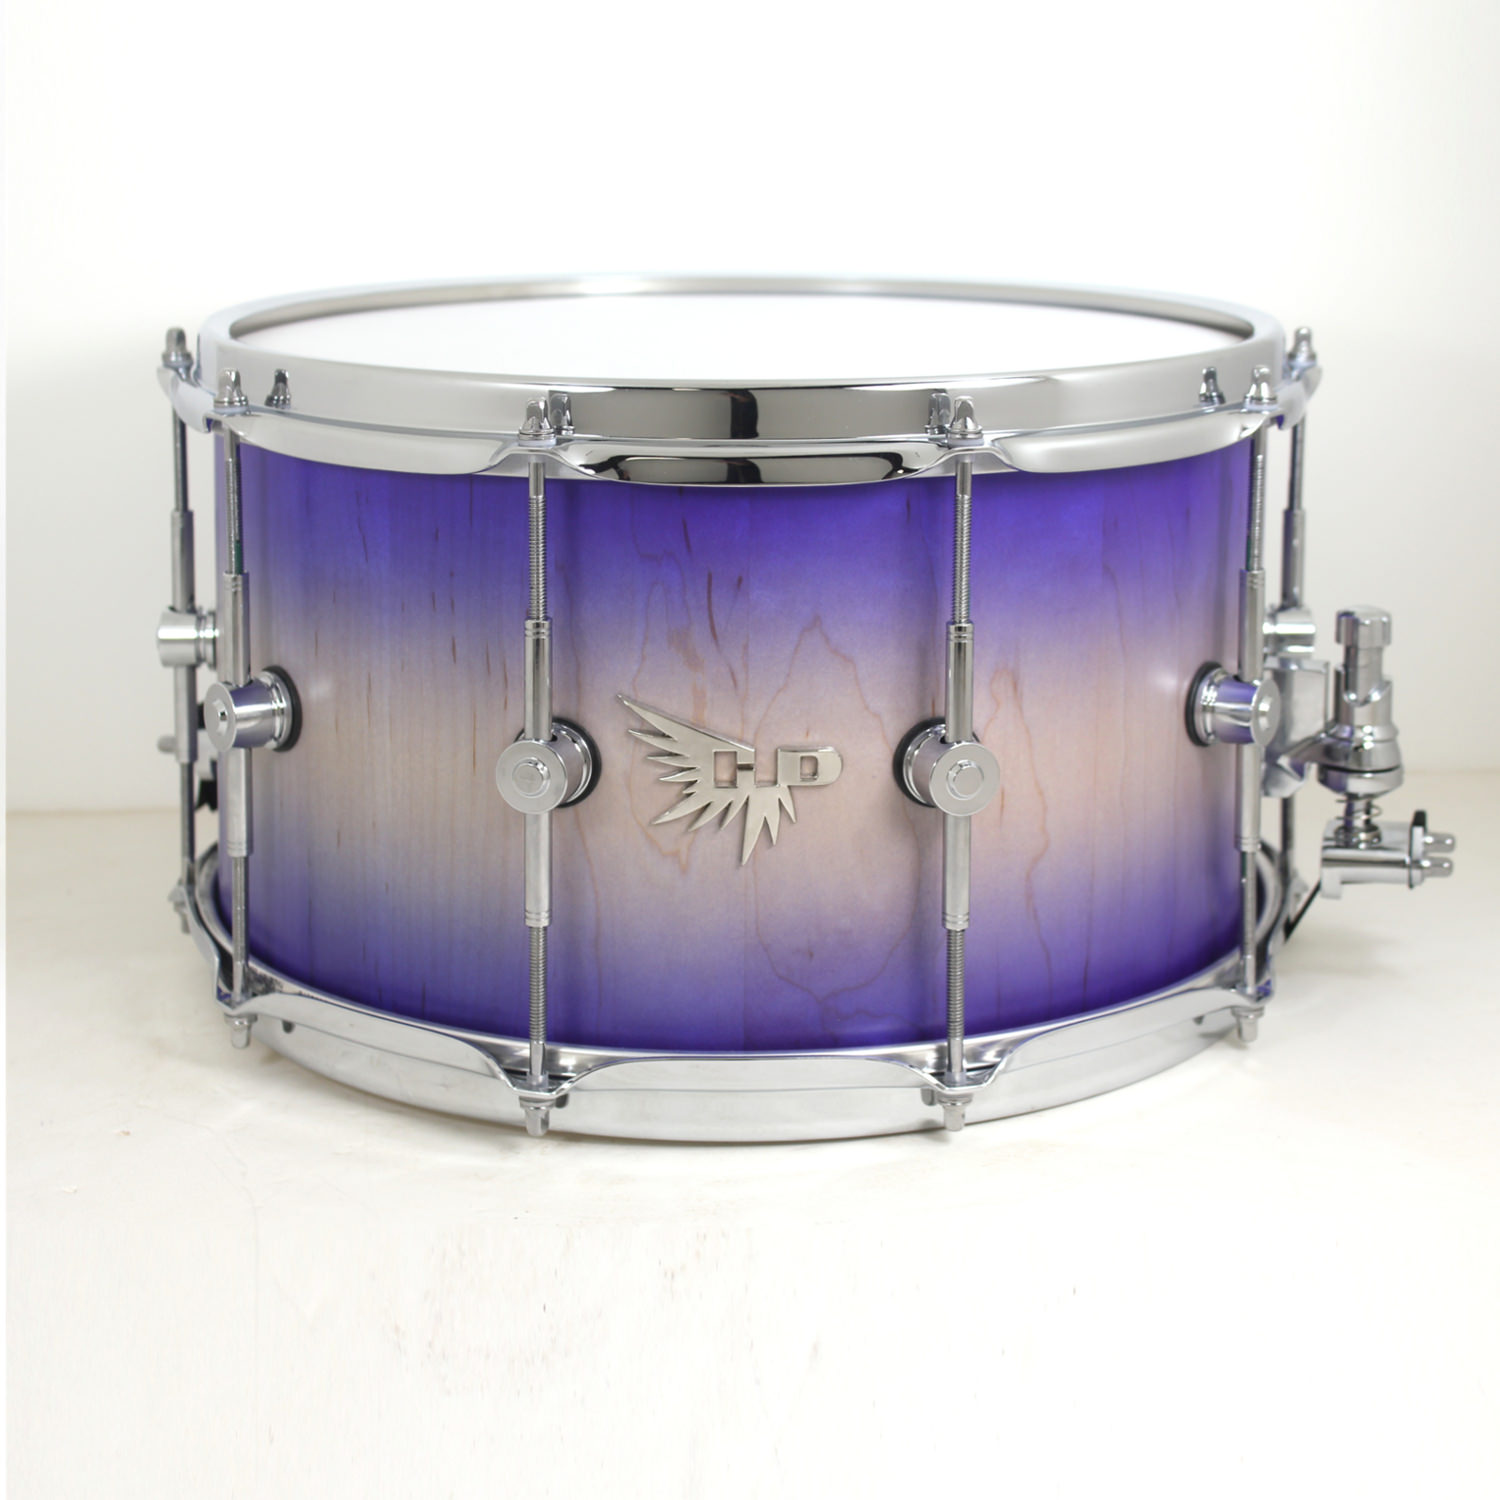 Dominique Austin Maple Stave Snare Drum Purple Hendrix Drums HD